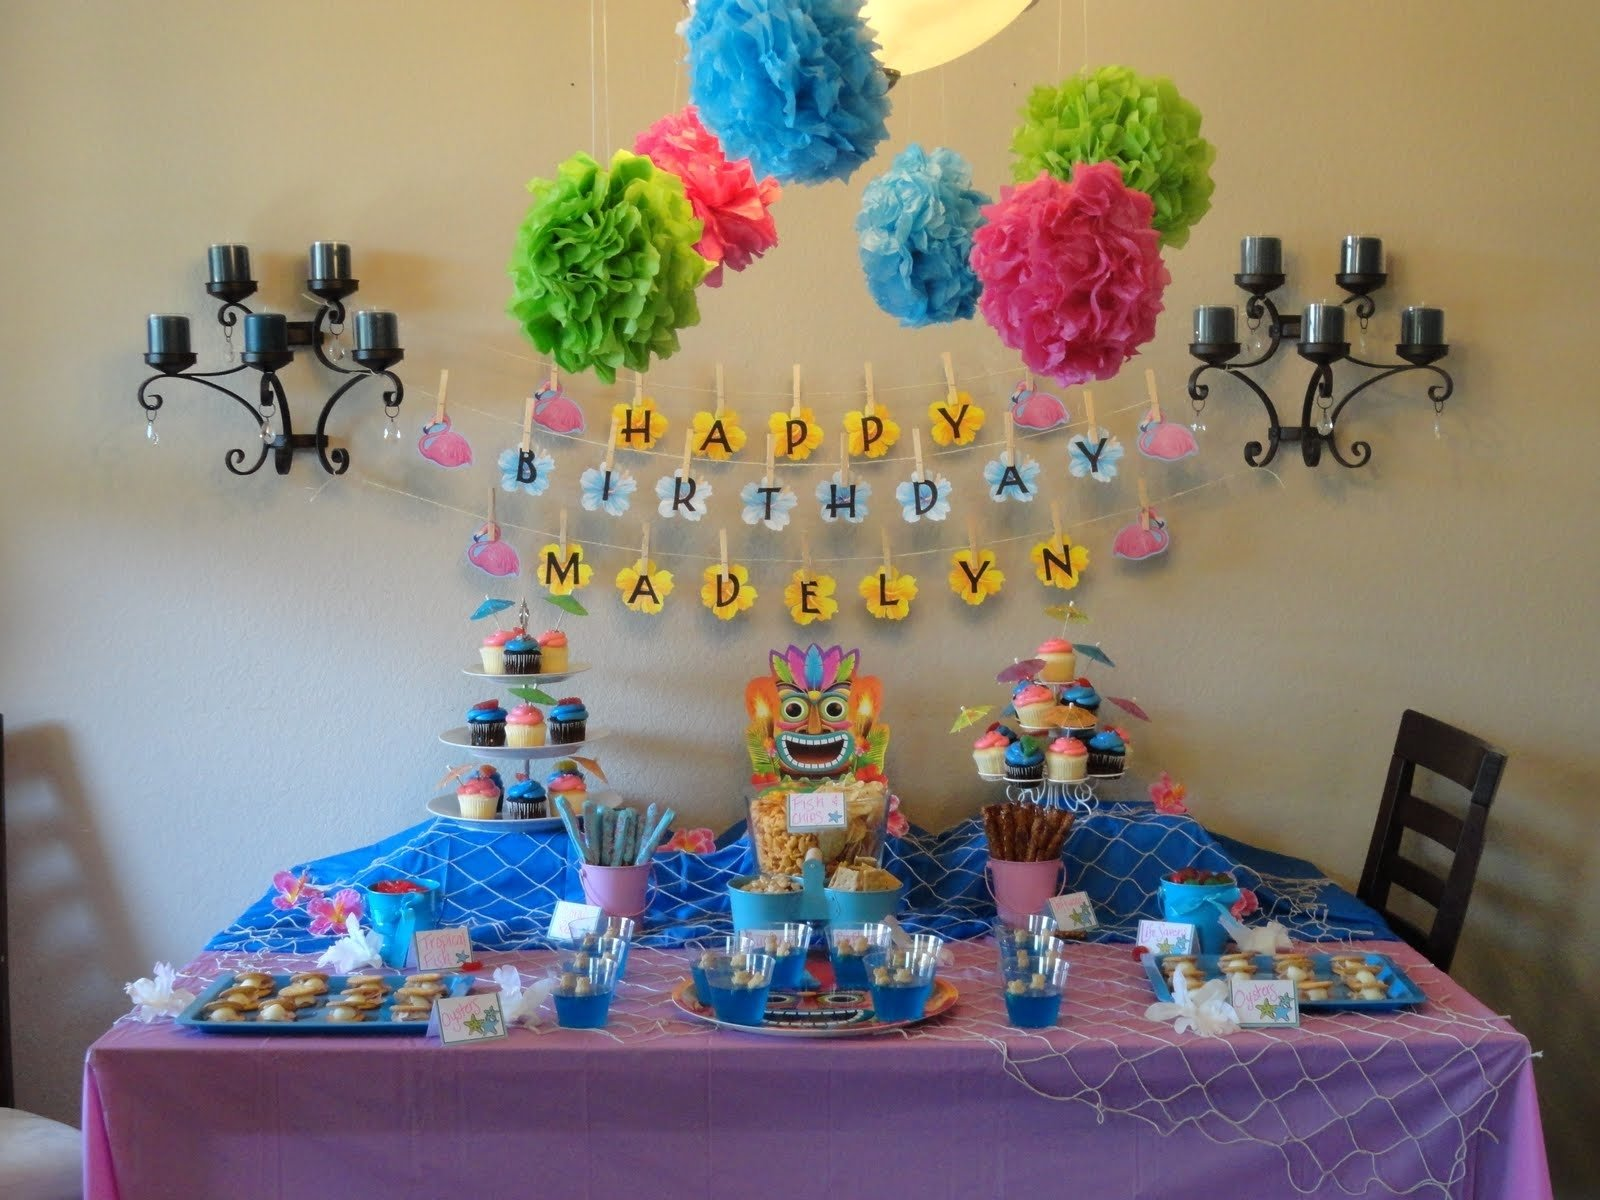 10 Lovely Birthday Ideas For 5 Year Old Boy Themes 2 And 4